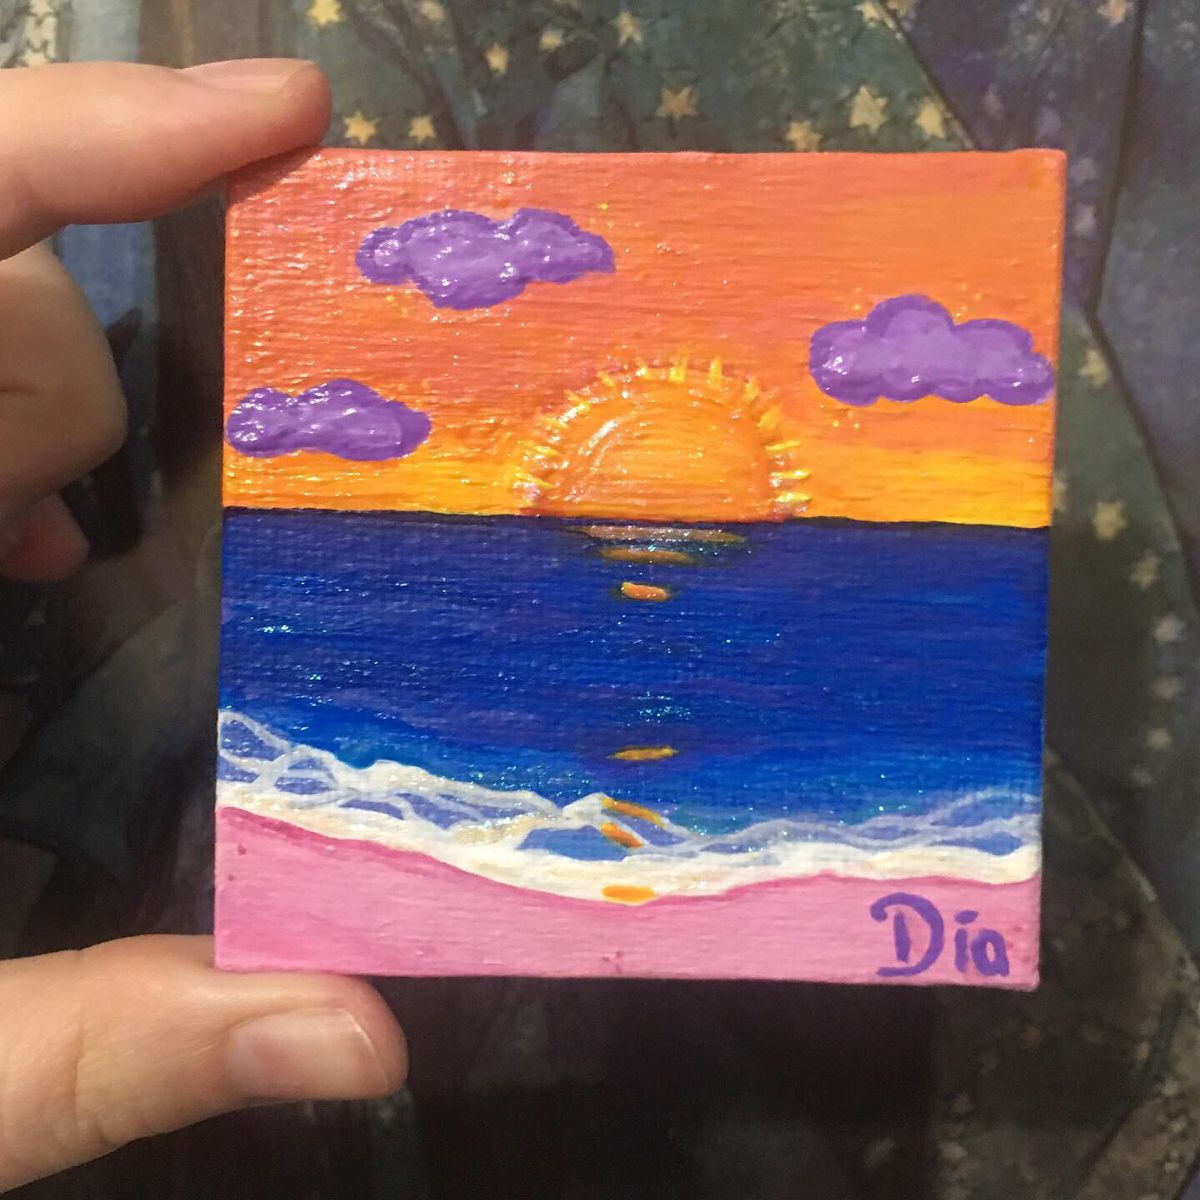 Tiny painting I made for a giveaway  #sun #beach #painting #minipainting #art #artwork #artforsale